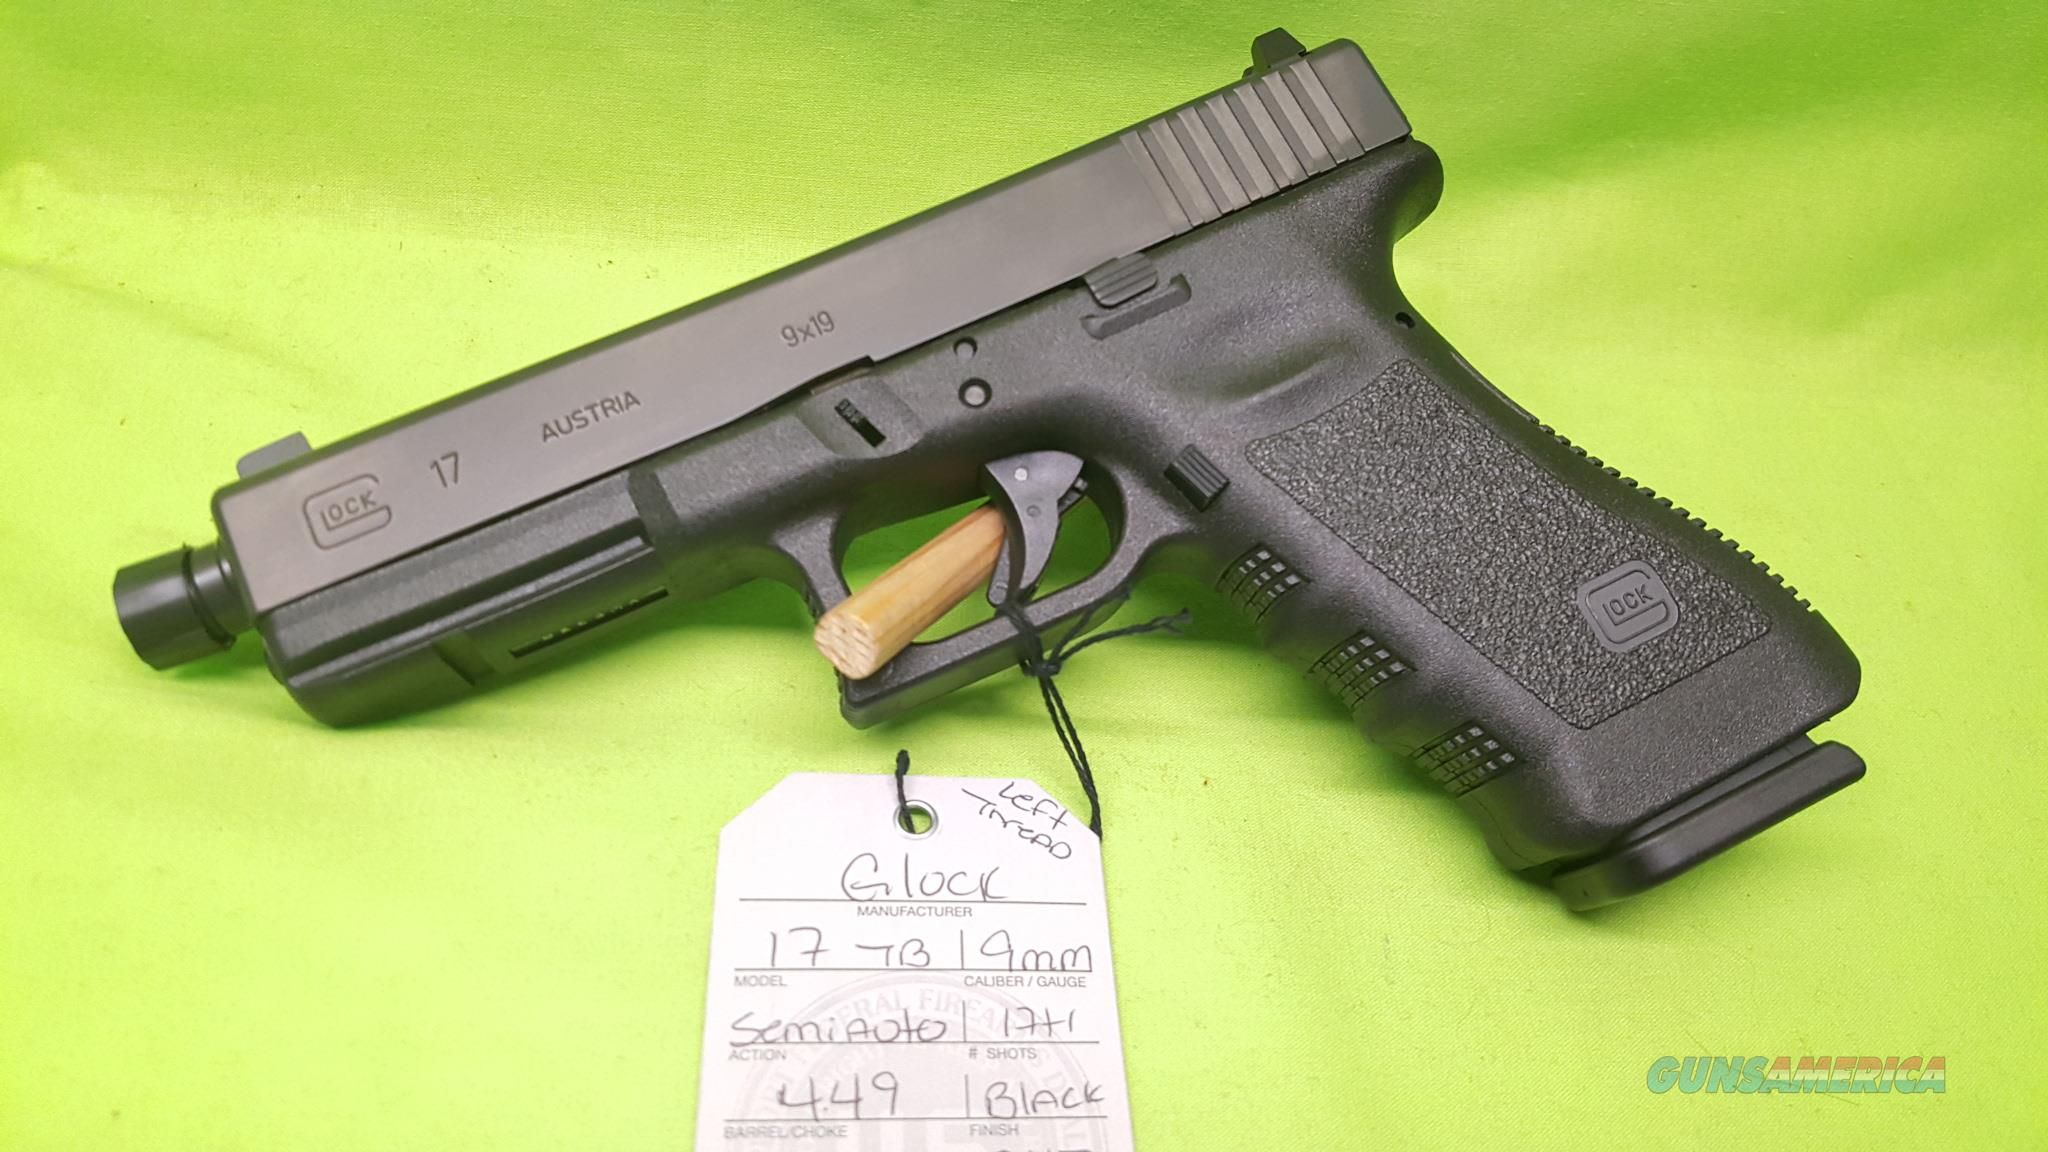 GLOCK 17 GEN 3 TB 9MM FACTORY THREADED BARREL 17RD  Guns > Pistols > Glock Pistols > 17